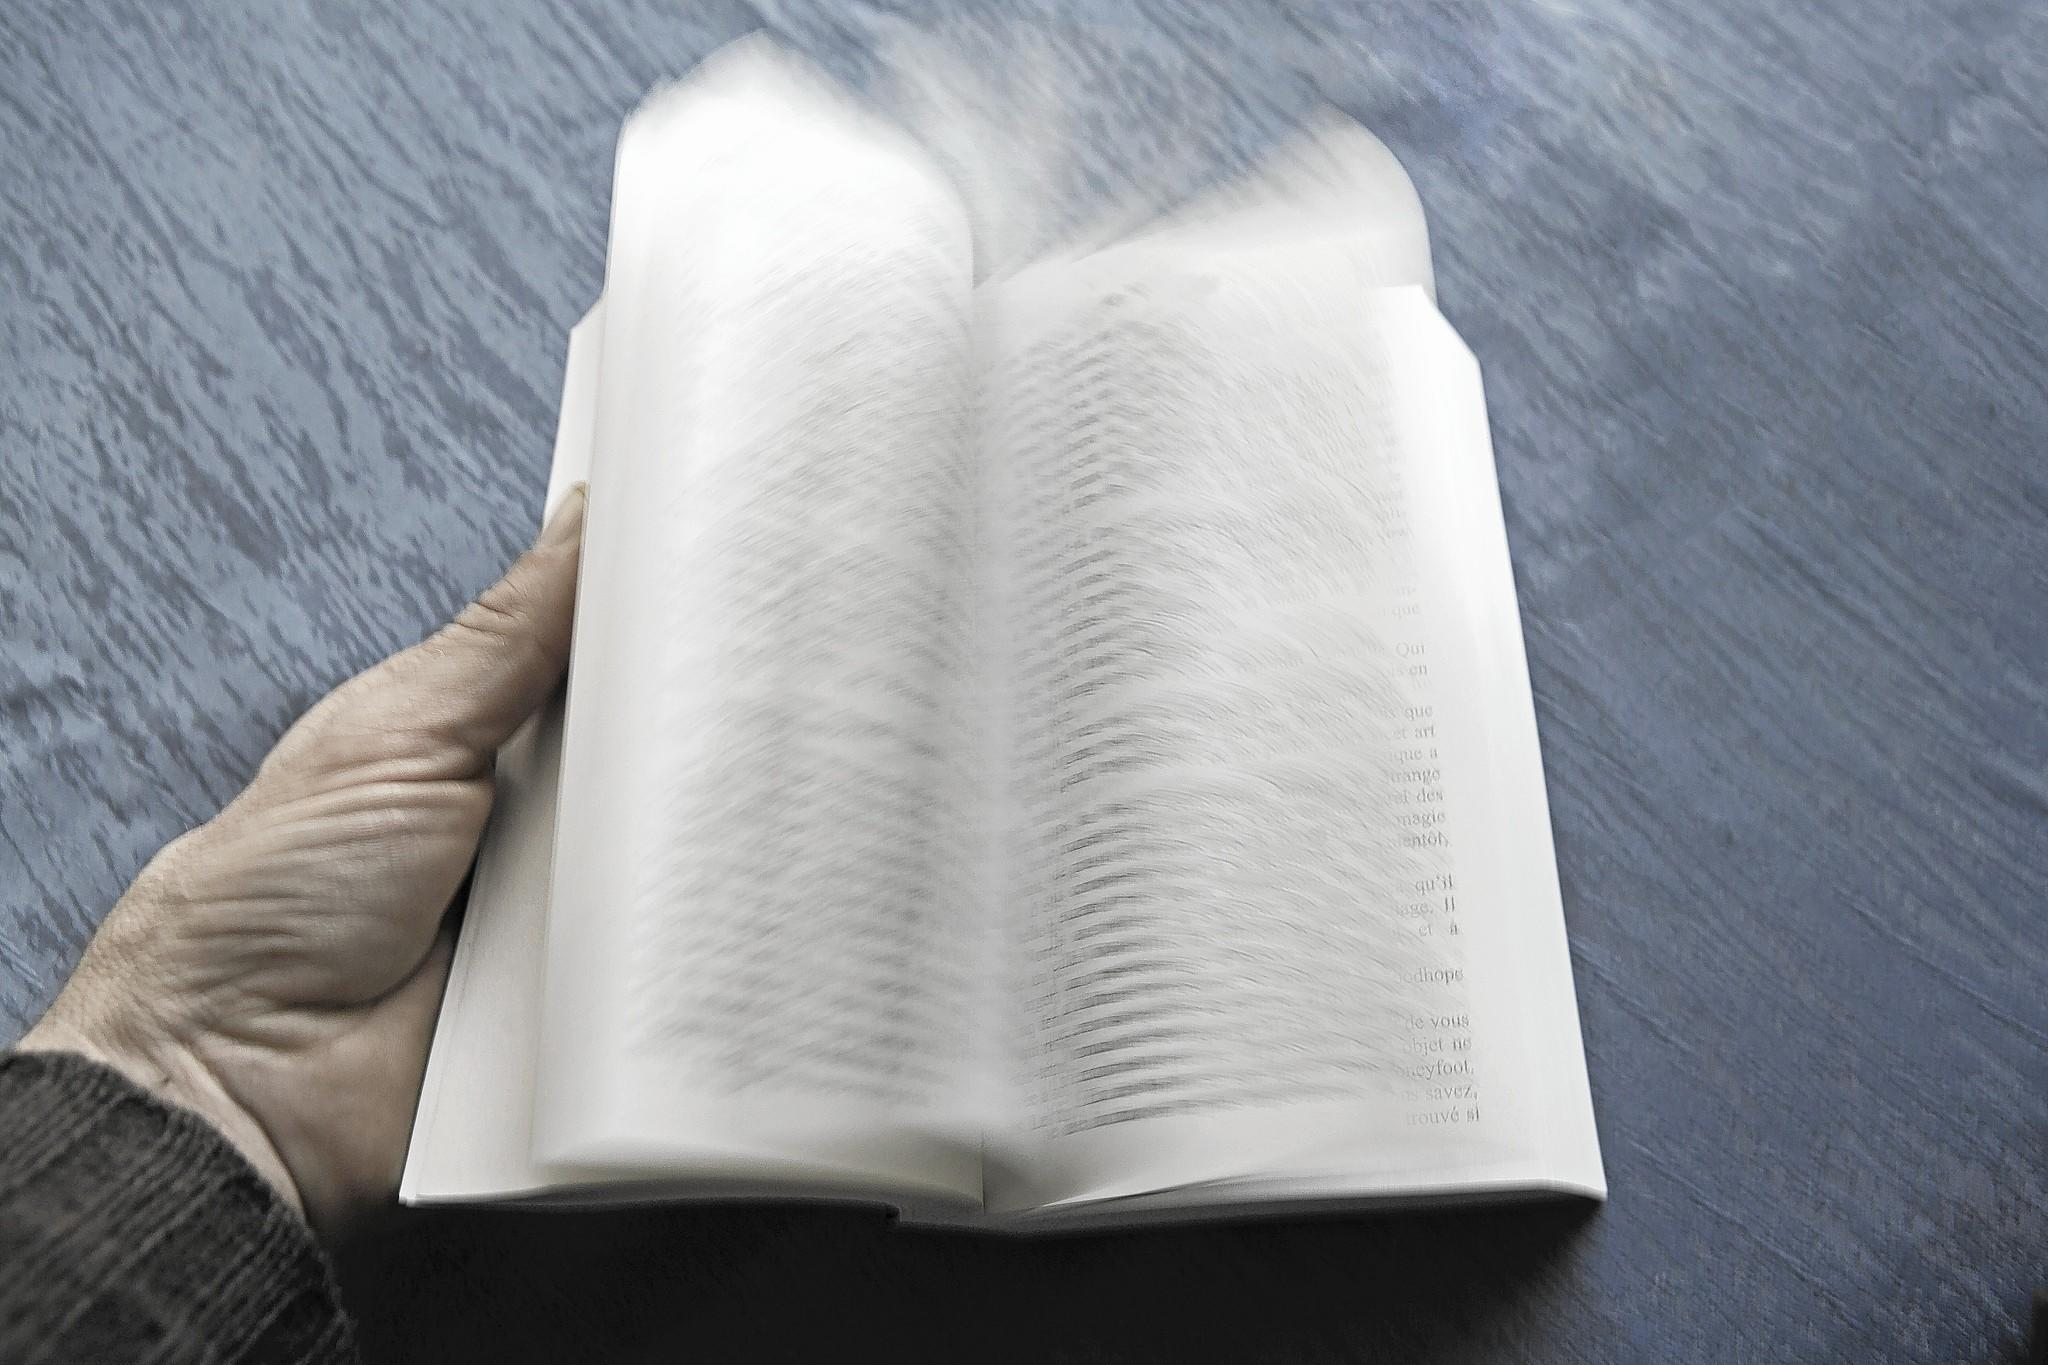 The Biblioracle thinks that the joys of reading a well written passage slowly are worth more than reading it quickly.